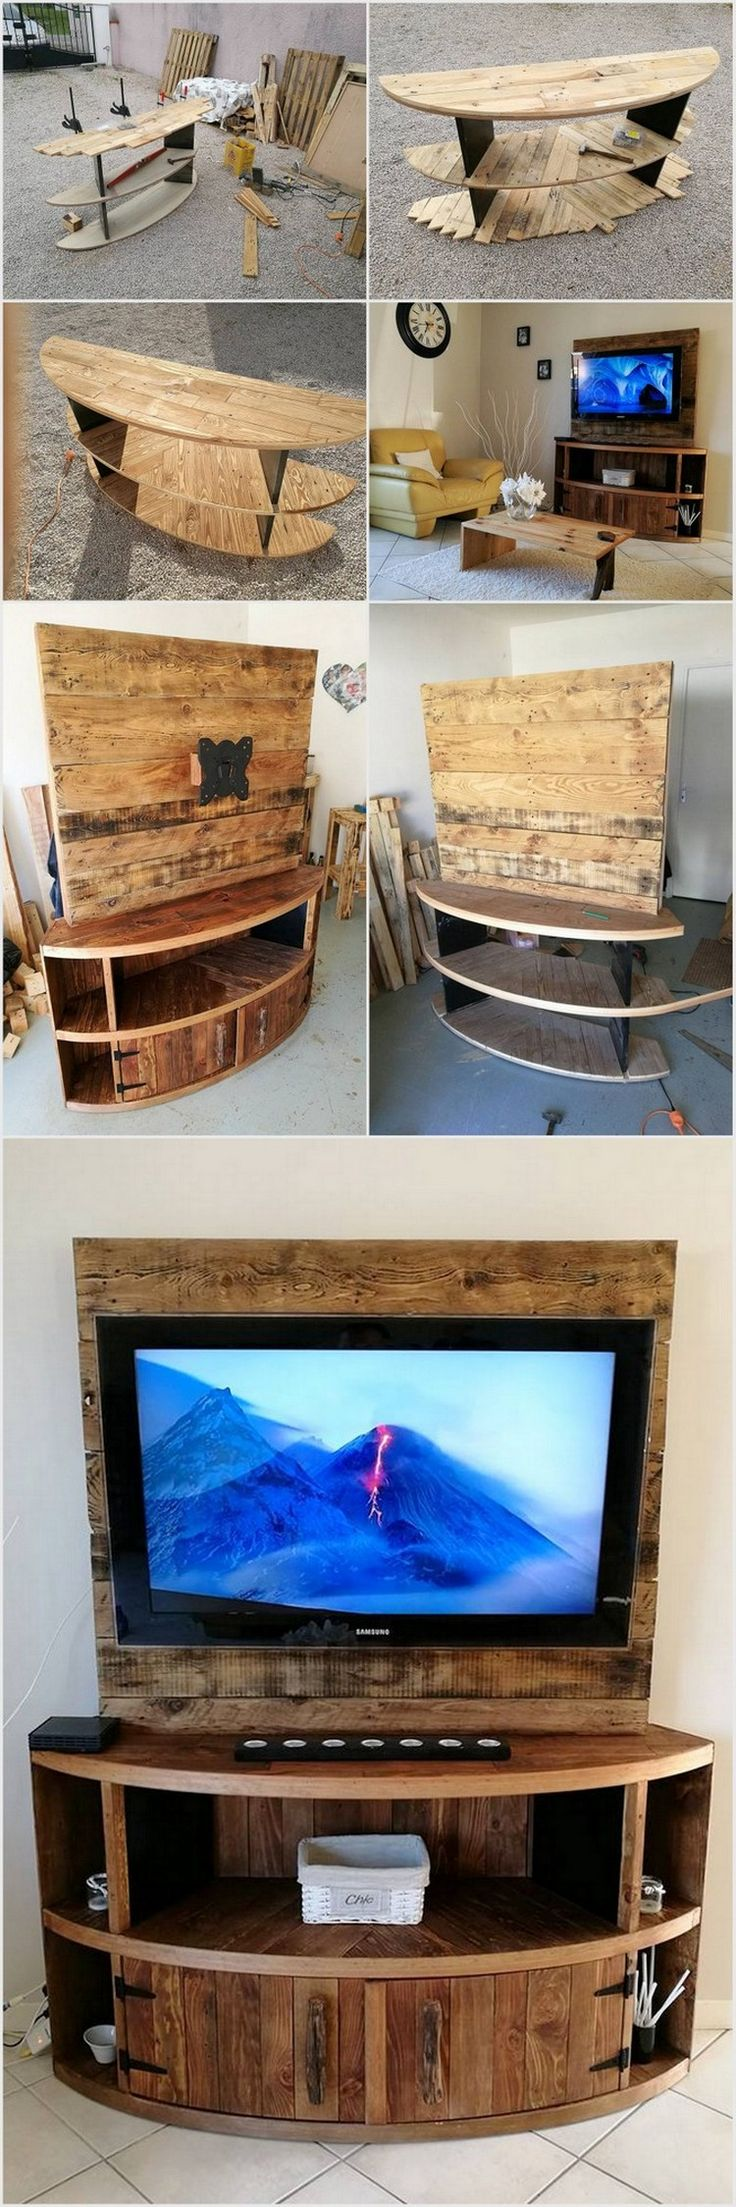 DIY Wood Pallet Entertainment Center - TV Stand